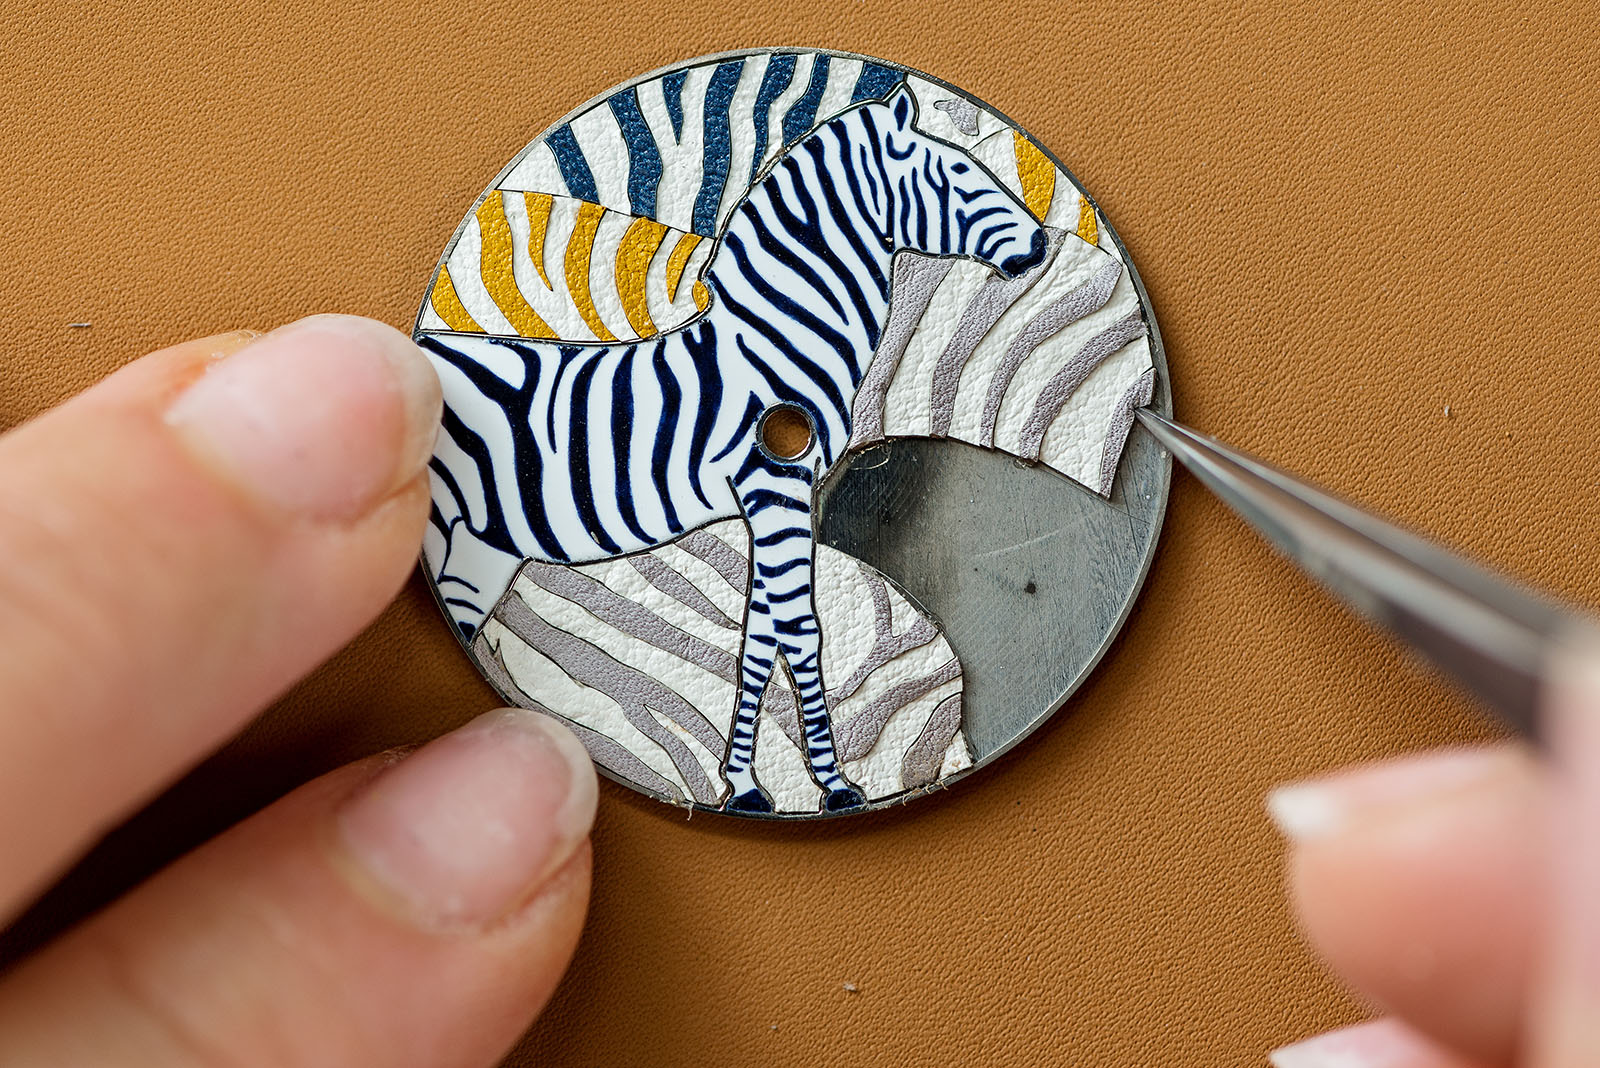 Baselworld 2019 Miniature Marquetry Art in Haute Horlogerie - Hermes - Leather baselworld 2019 Baselworld 2019: Miniature Marquetry Art in Haute Horlogerie Baselworld 2019 Miniature Marquetry Art in Haute Horlogerie Hermes Leather